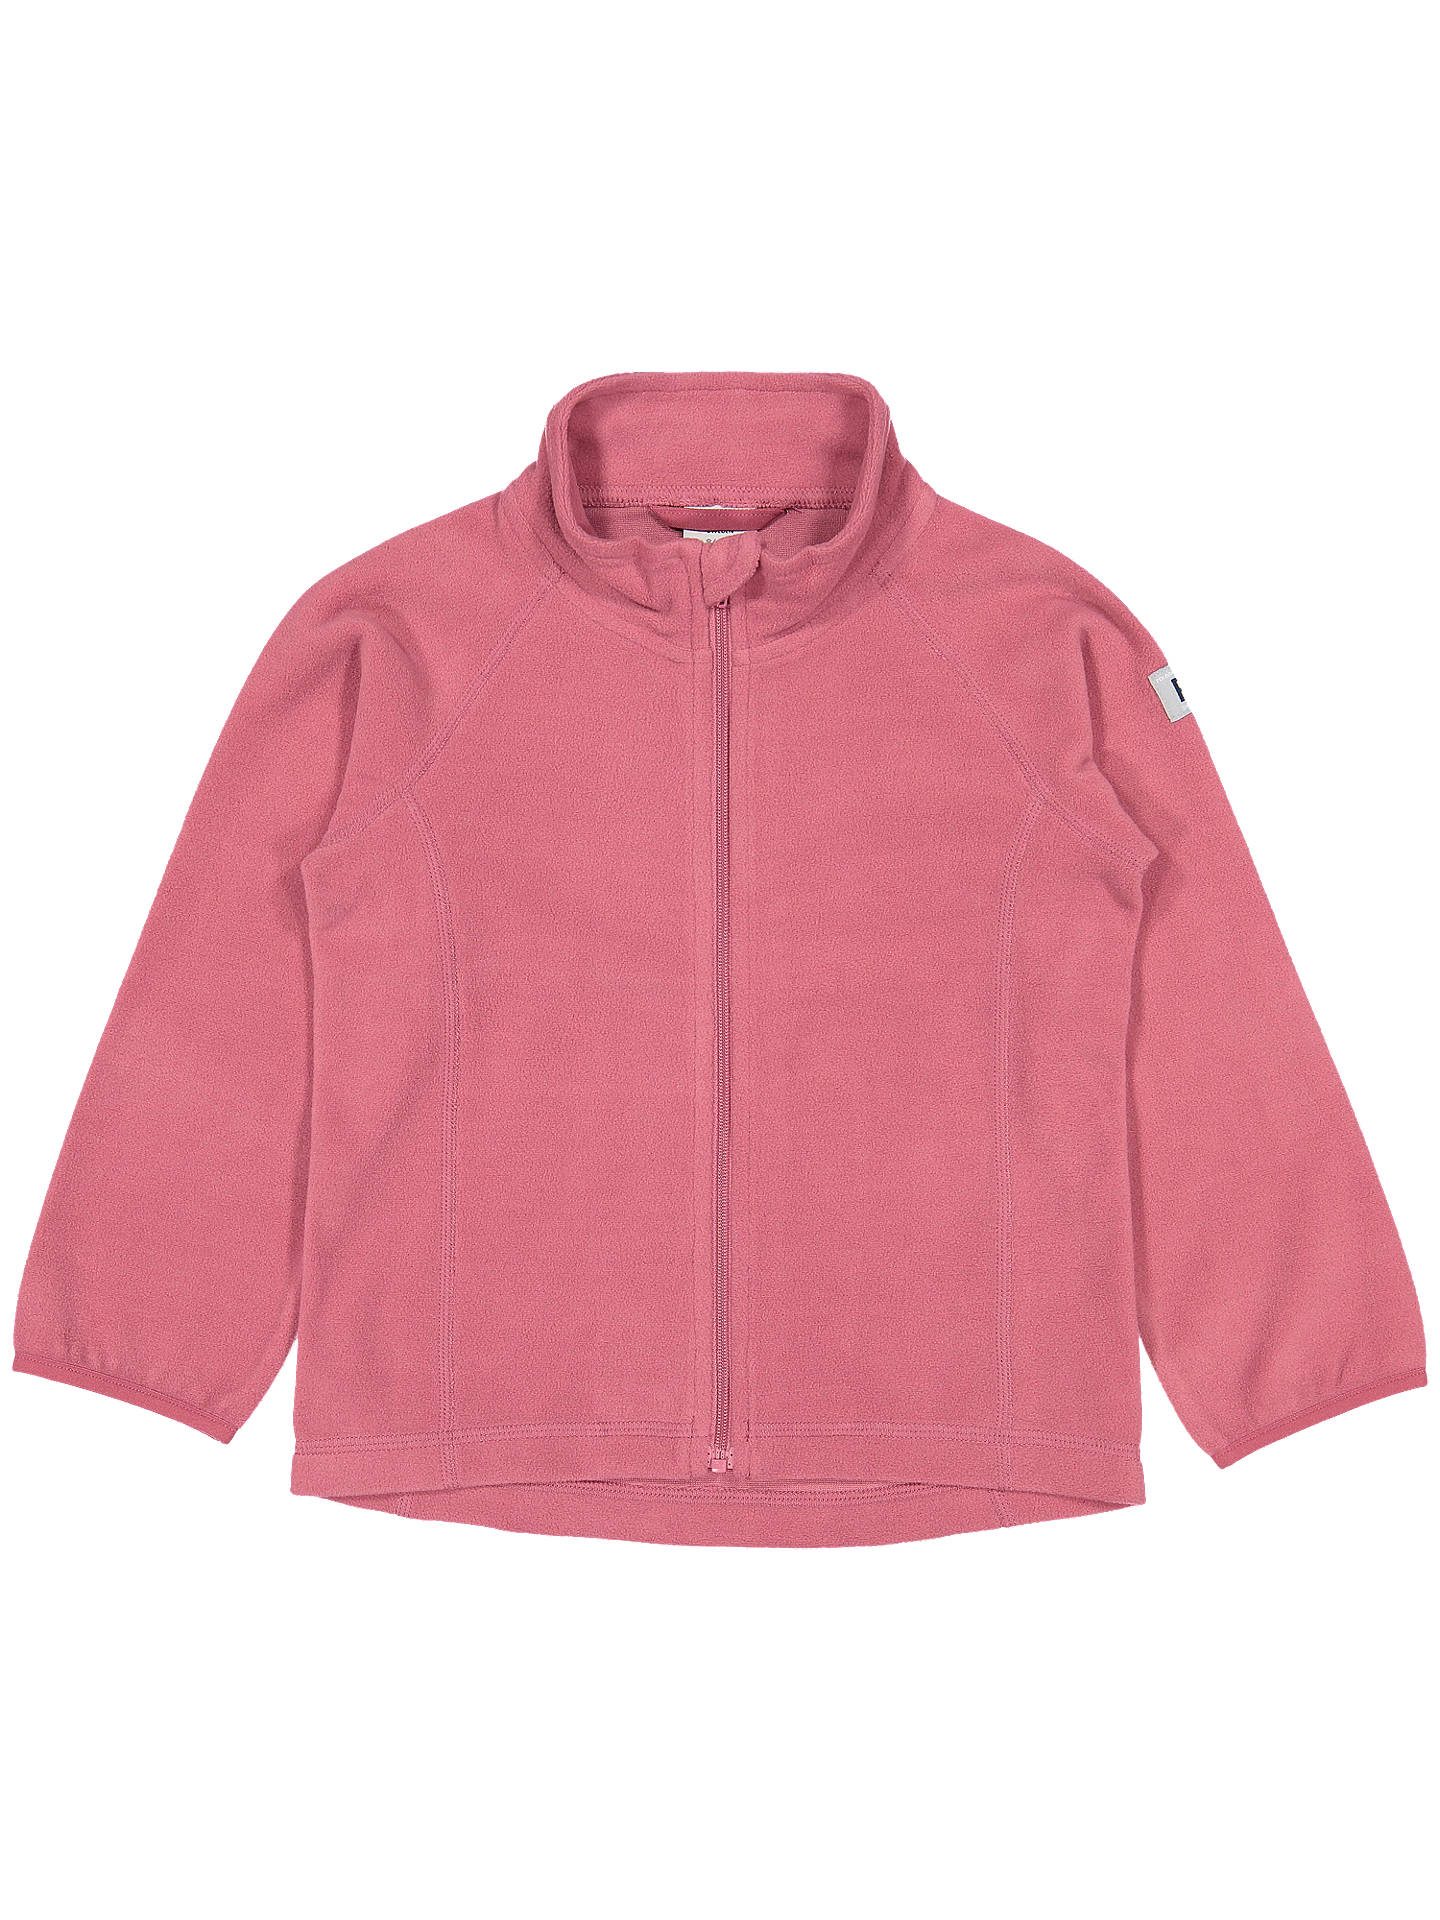 BuyPolarn O. Pyret Baby's Zip Fleece, Pink, 12-24 months Online at johnlewis.com